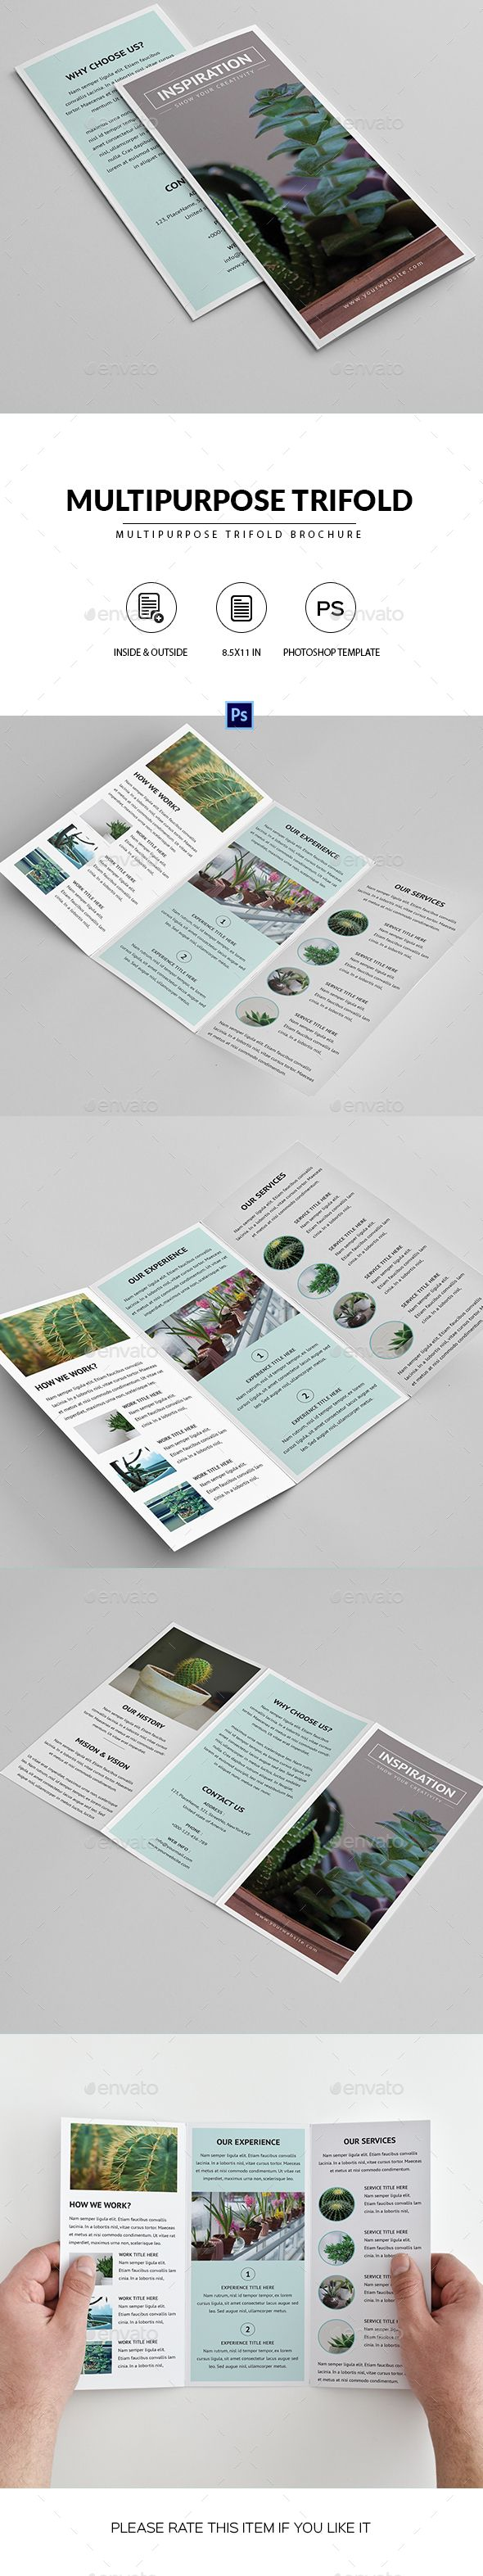 Multipurpose Trifold Brochure   Pinterest   Brochures  Brochure     Multipurpose Trifold Brochure     Photoshop PSD  8 5x11  trifold     Download         https   graphicriver net item multipurpose trifold brochure  20287596 ref pxcr